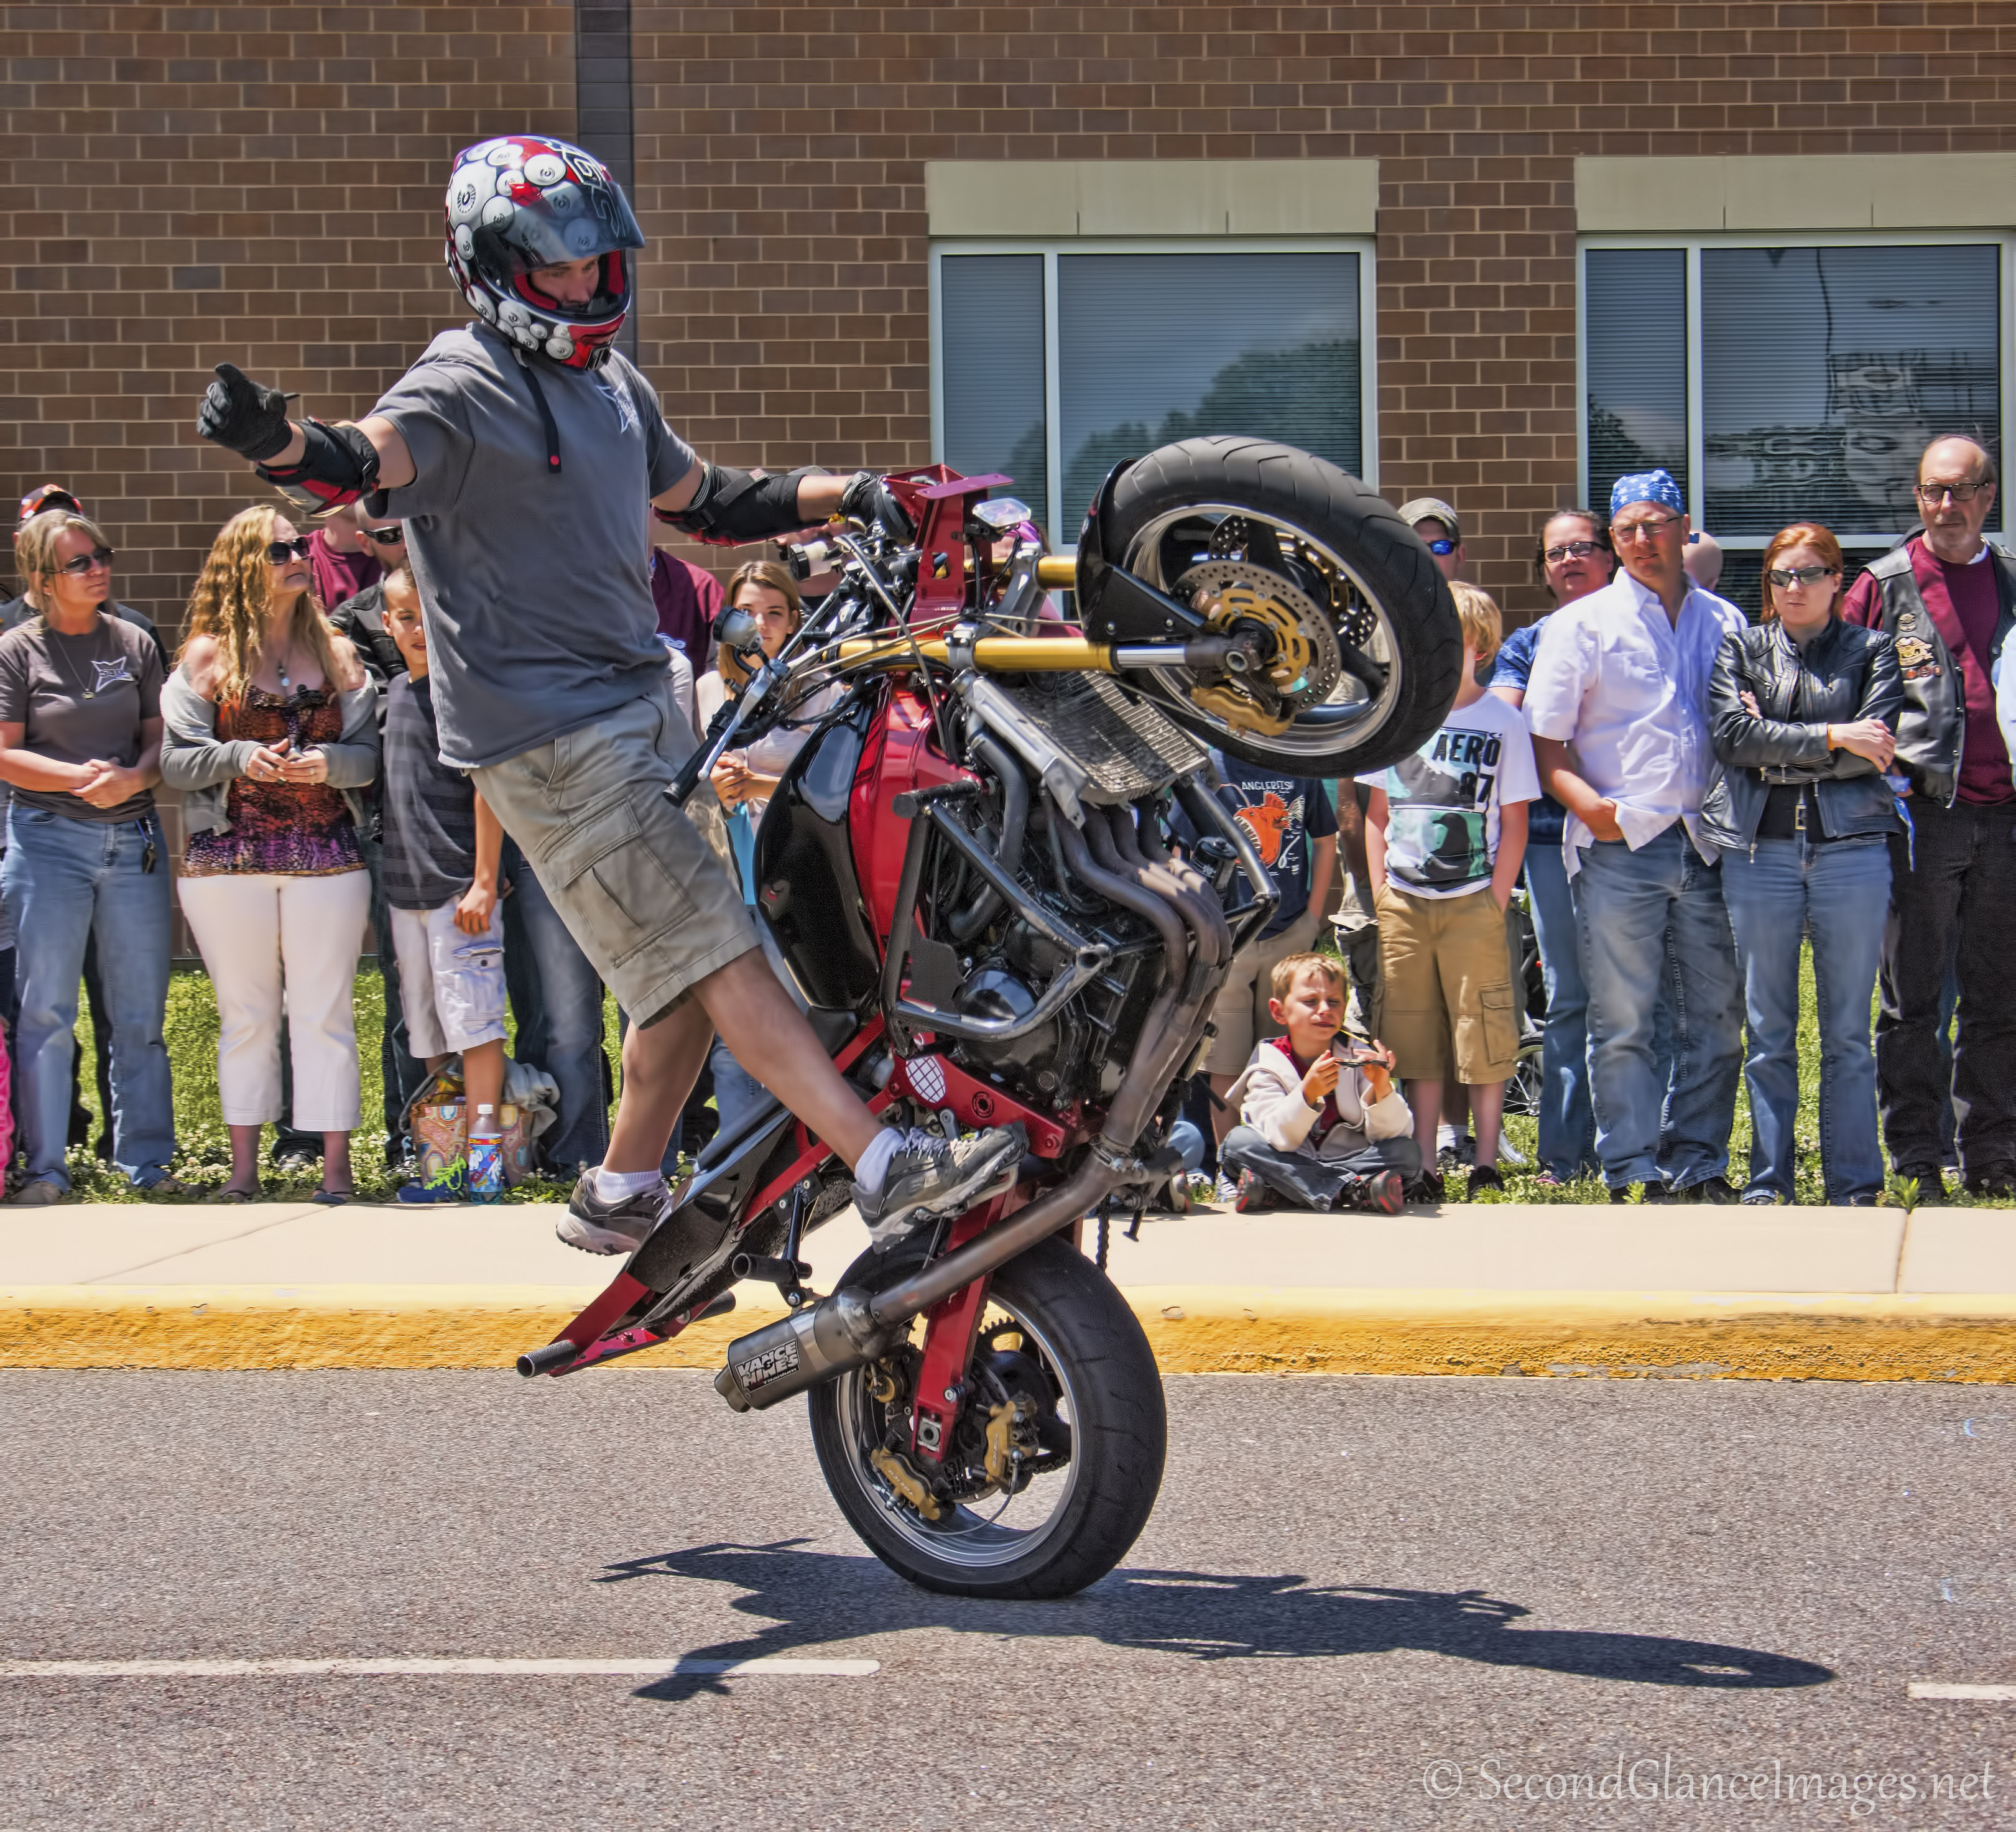 Another of the stunt riders ...